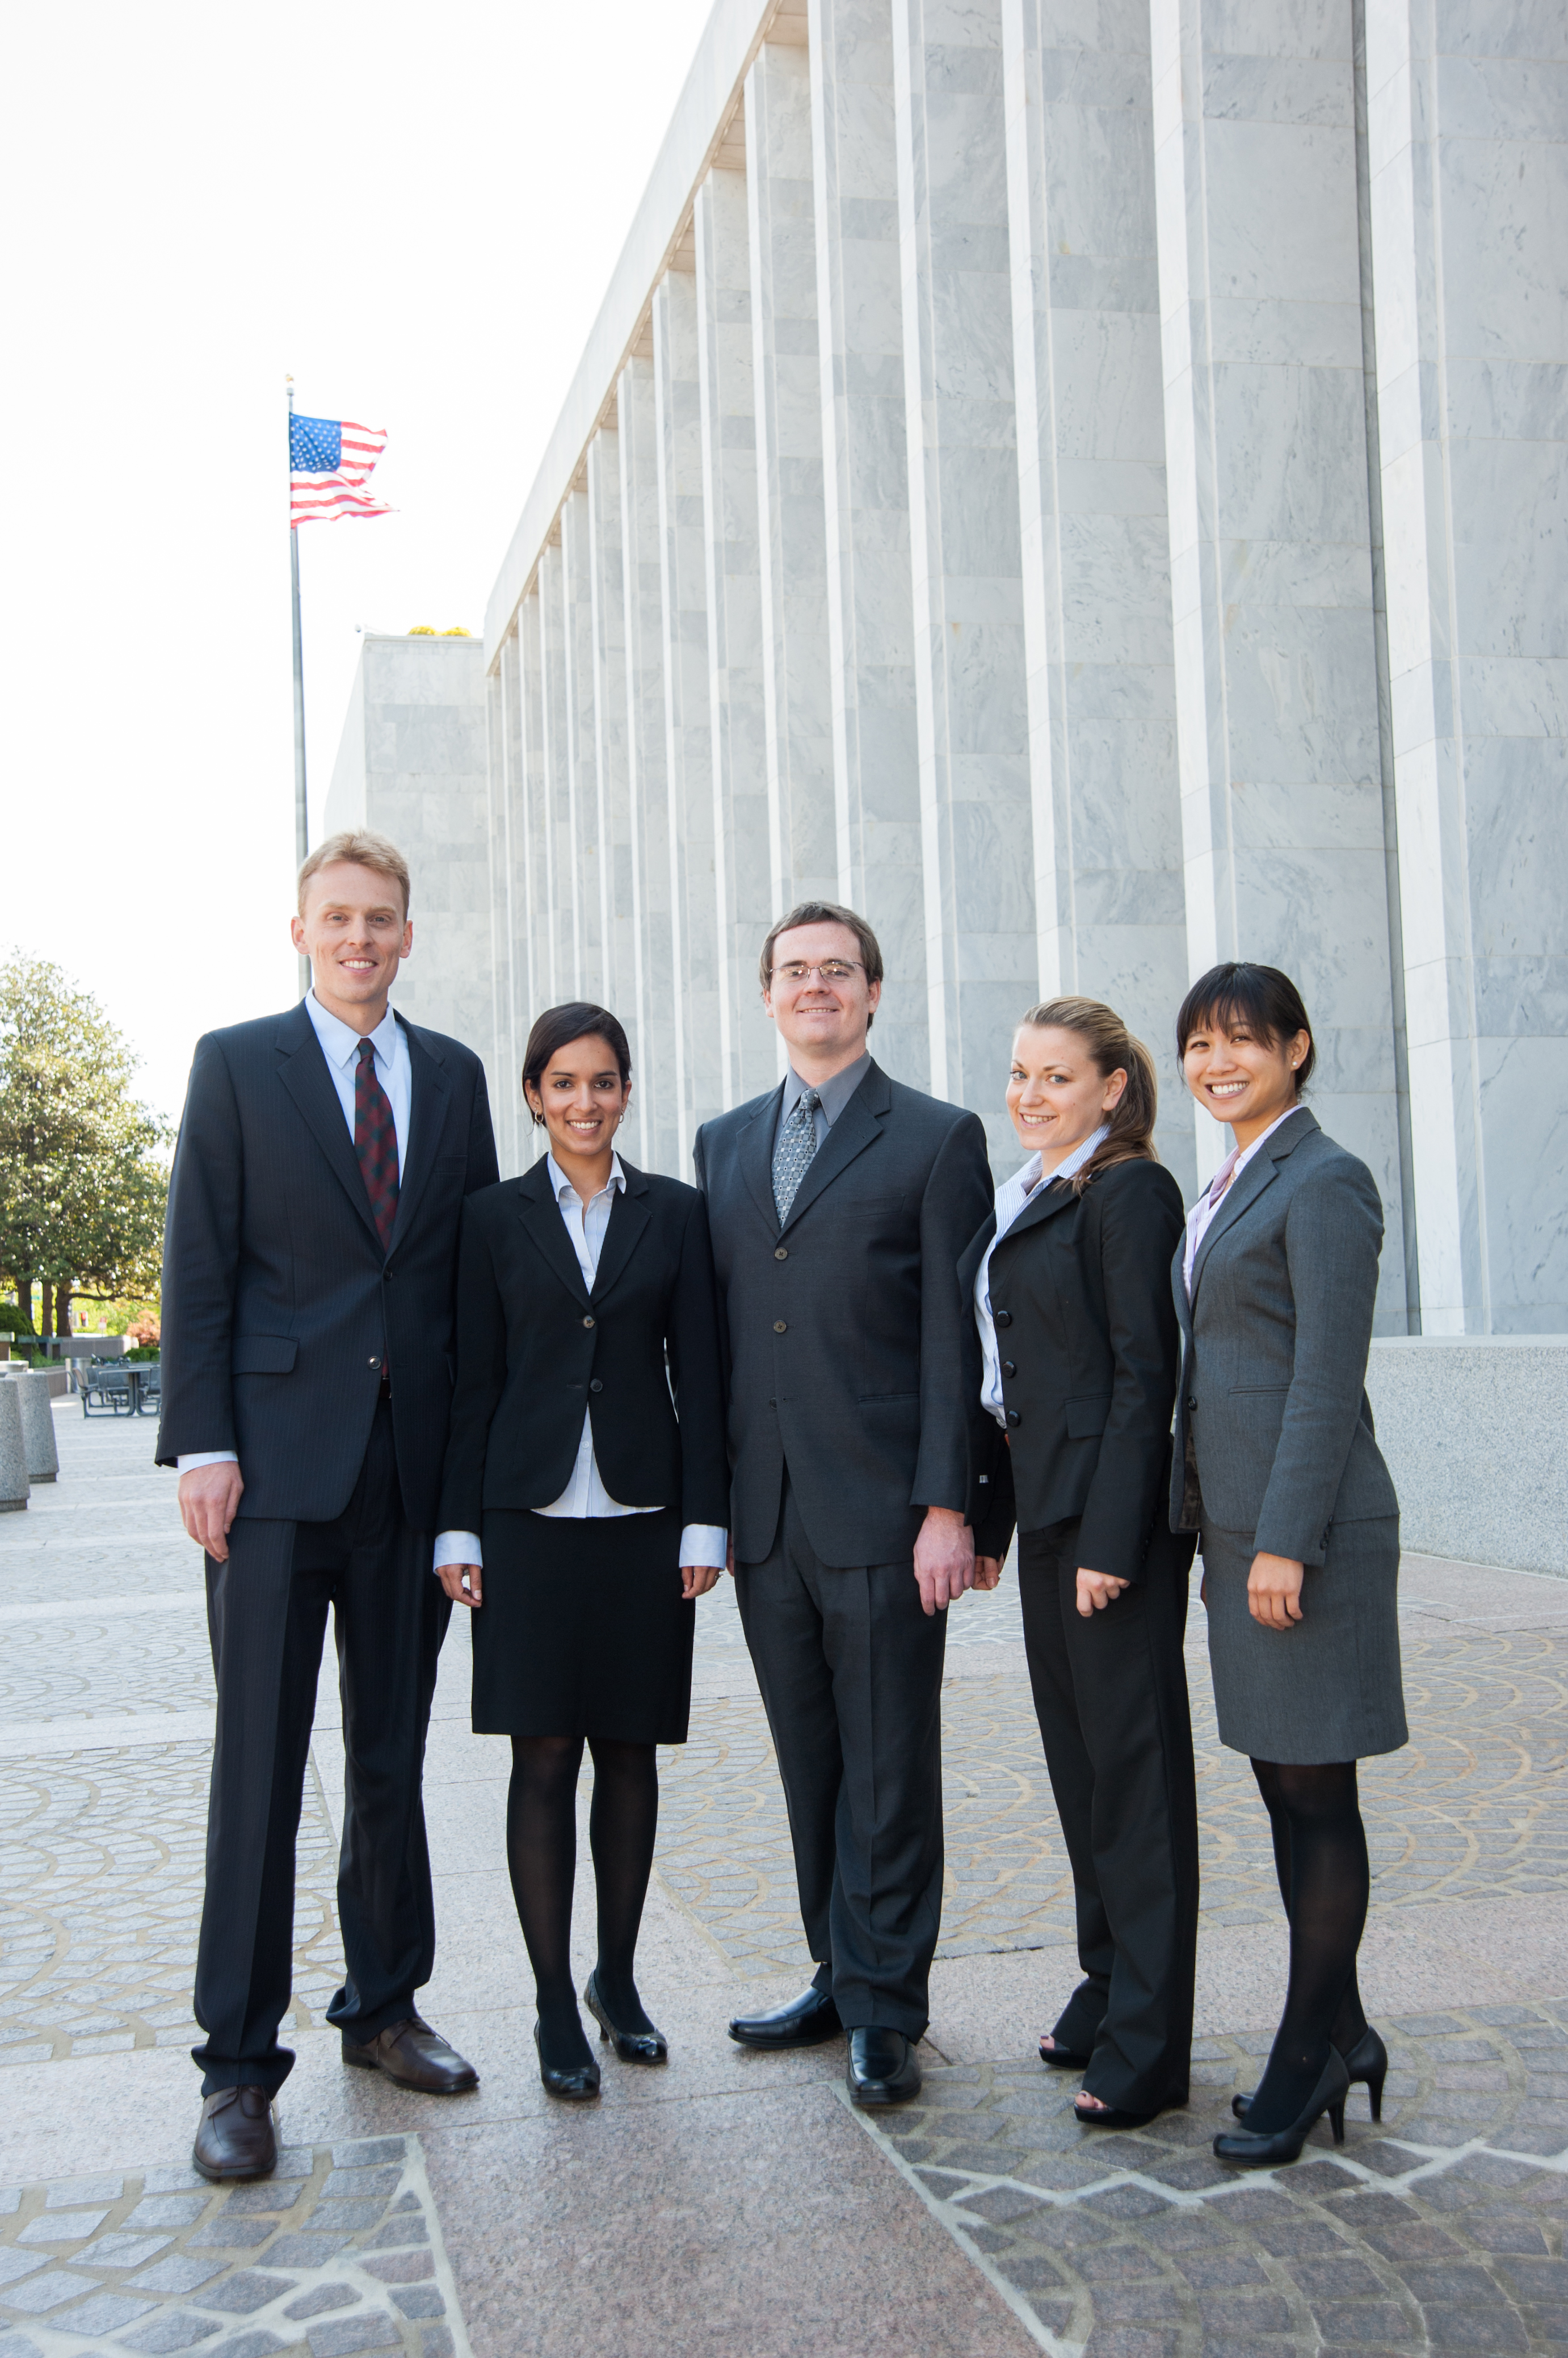 USC Price students deliver a presentation on their practicum project in Washington, D.C.